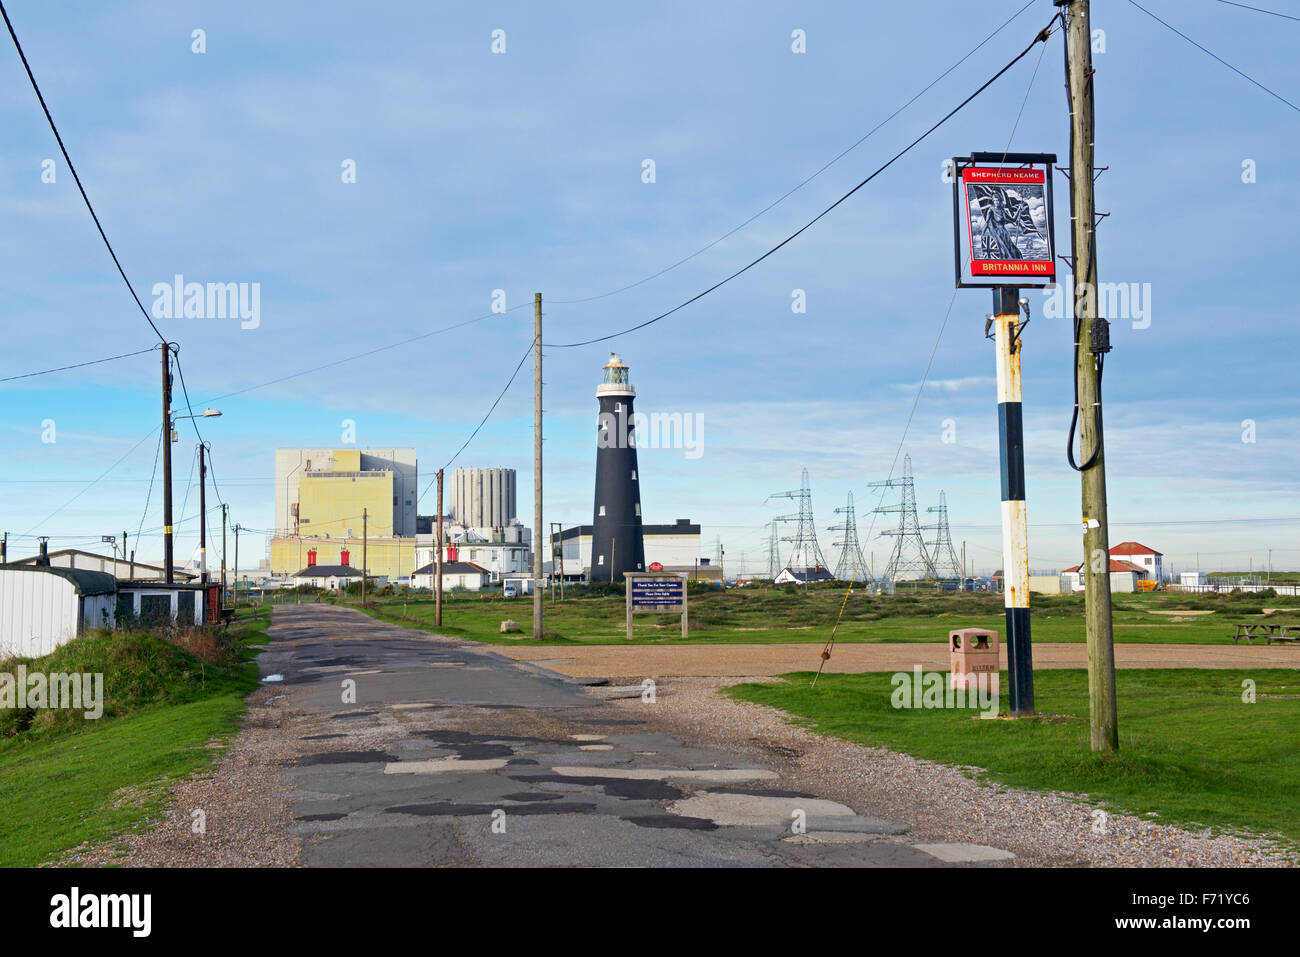 Road at Dungeness, leading to nuclear power station in background, Kent, England UK - Stock Image